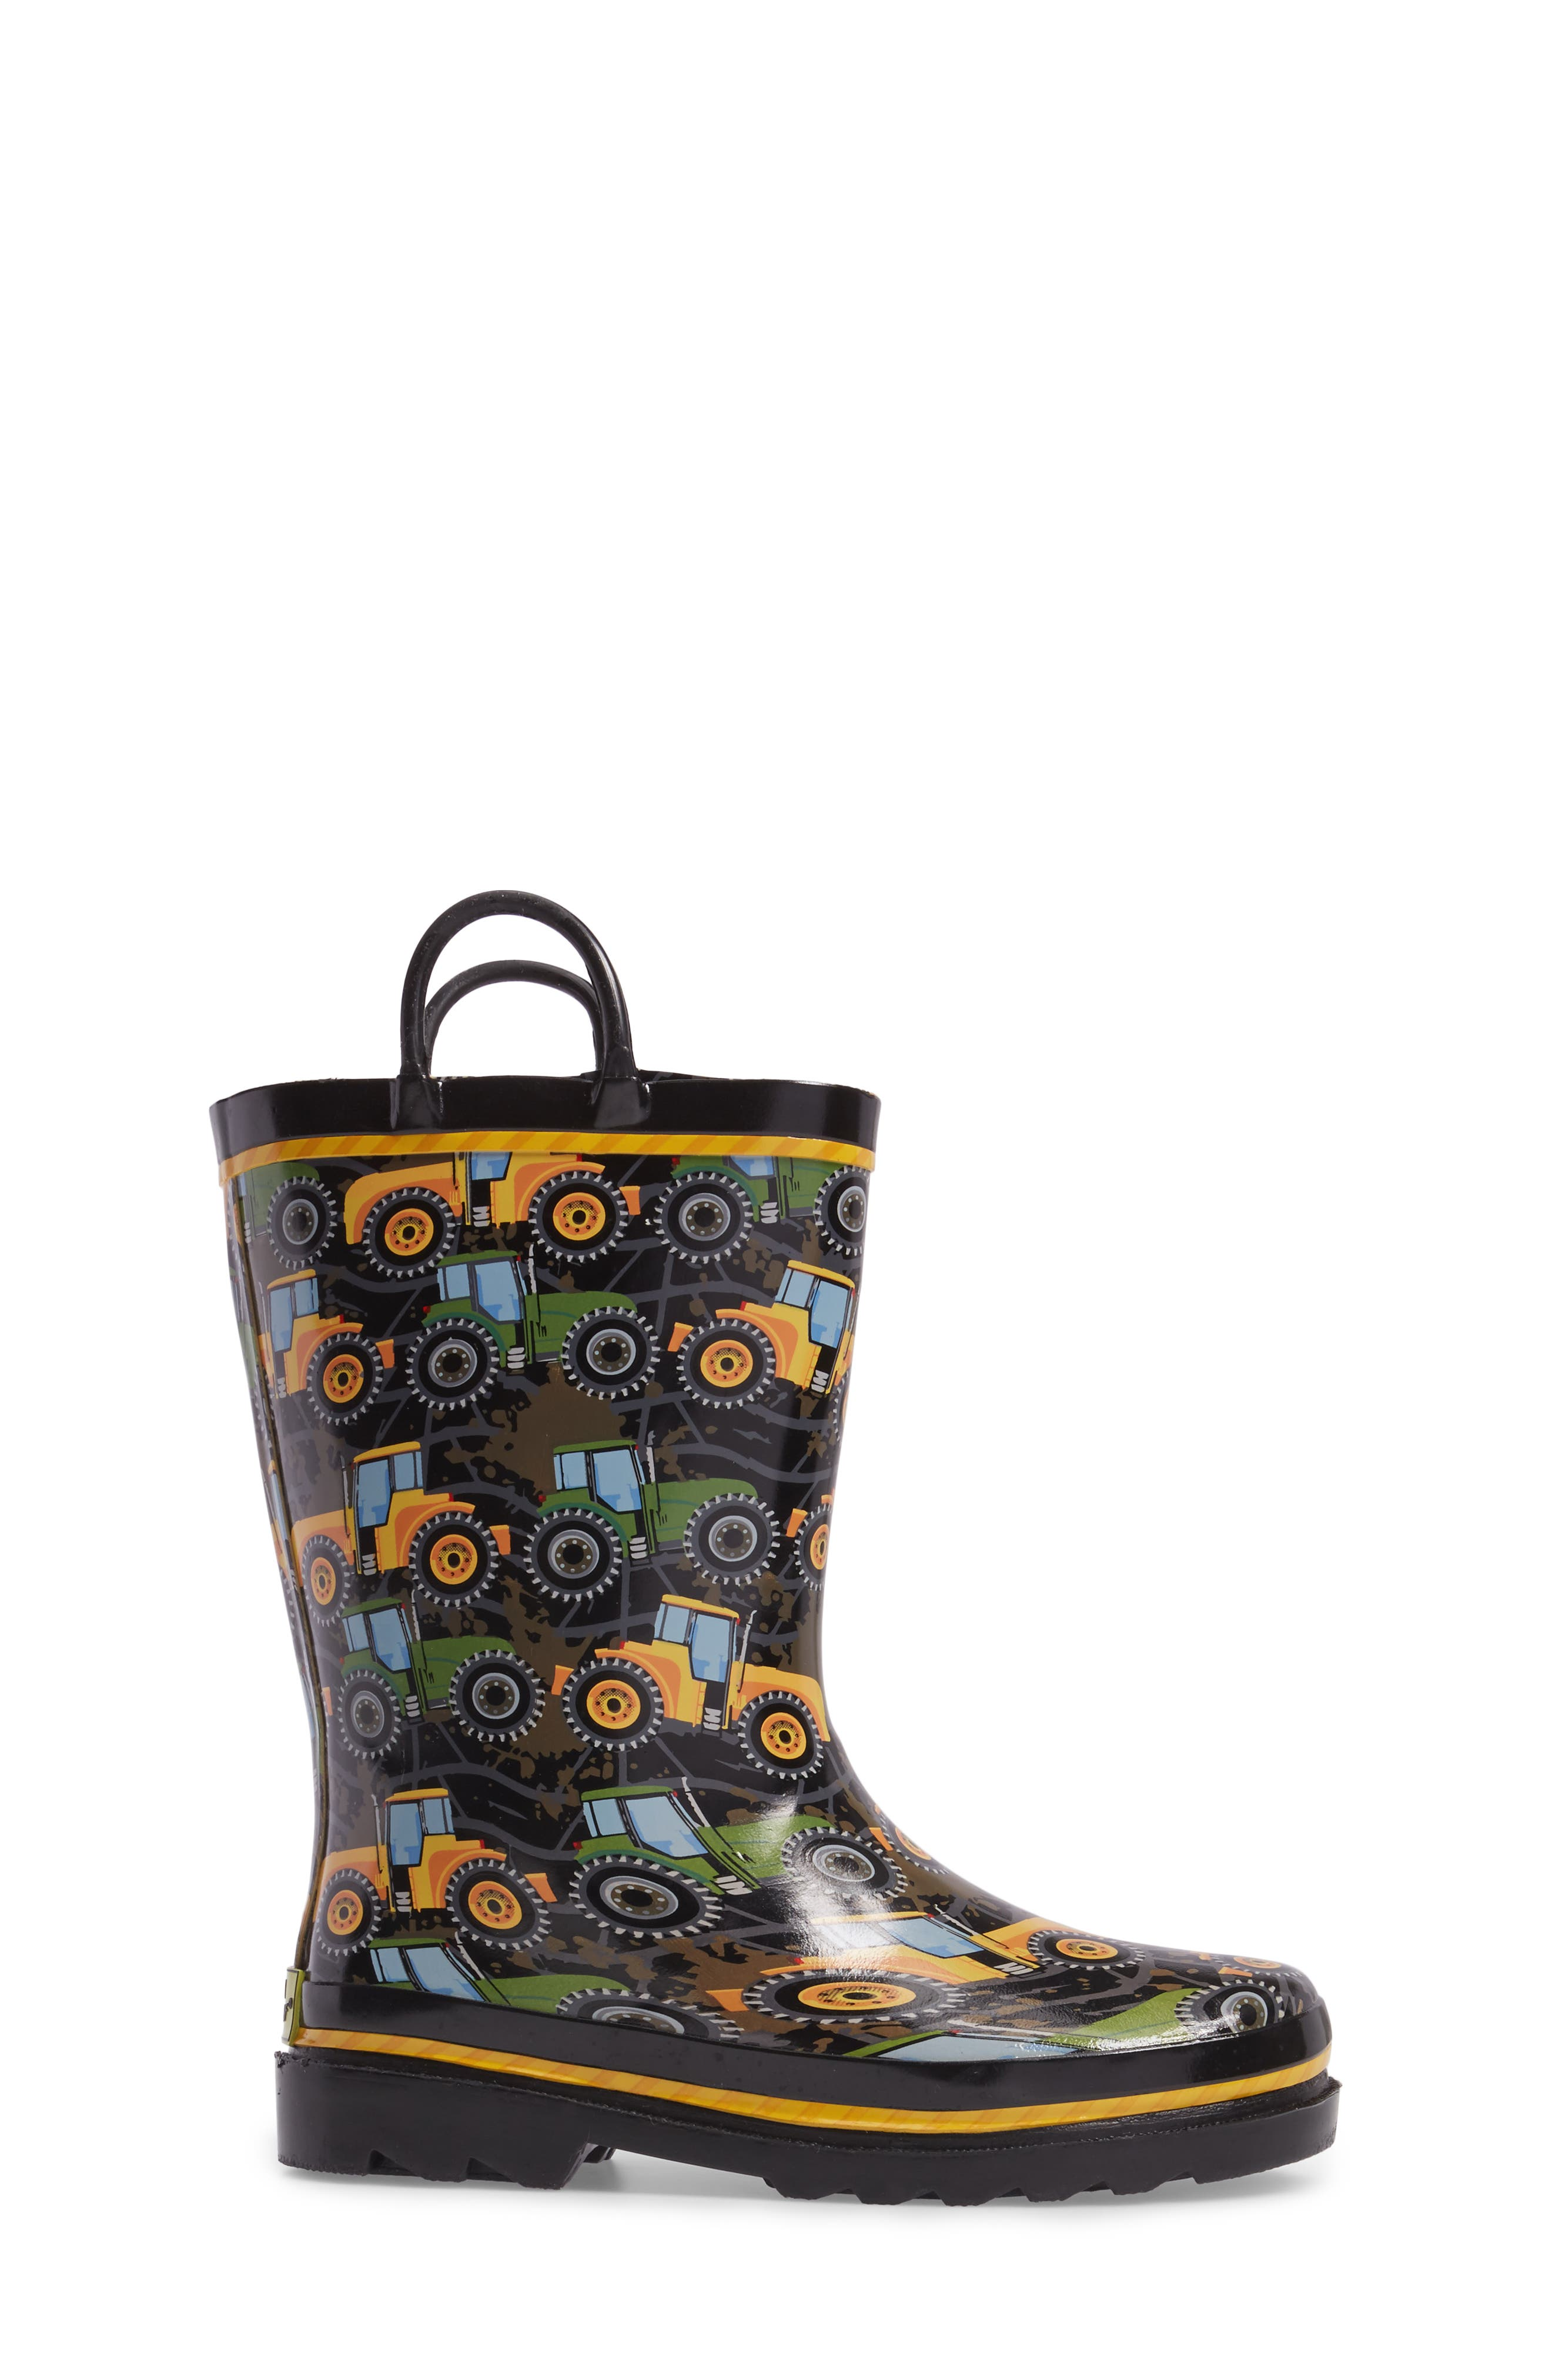 Tractor Tough Rain Boot,                             Alternate thumbnail 3, color,                             Black